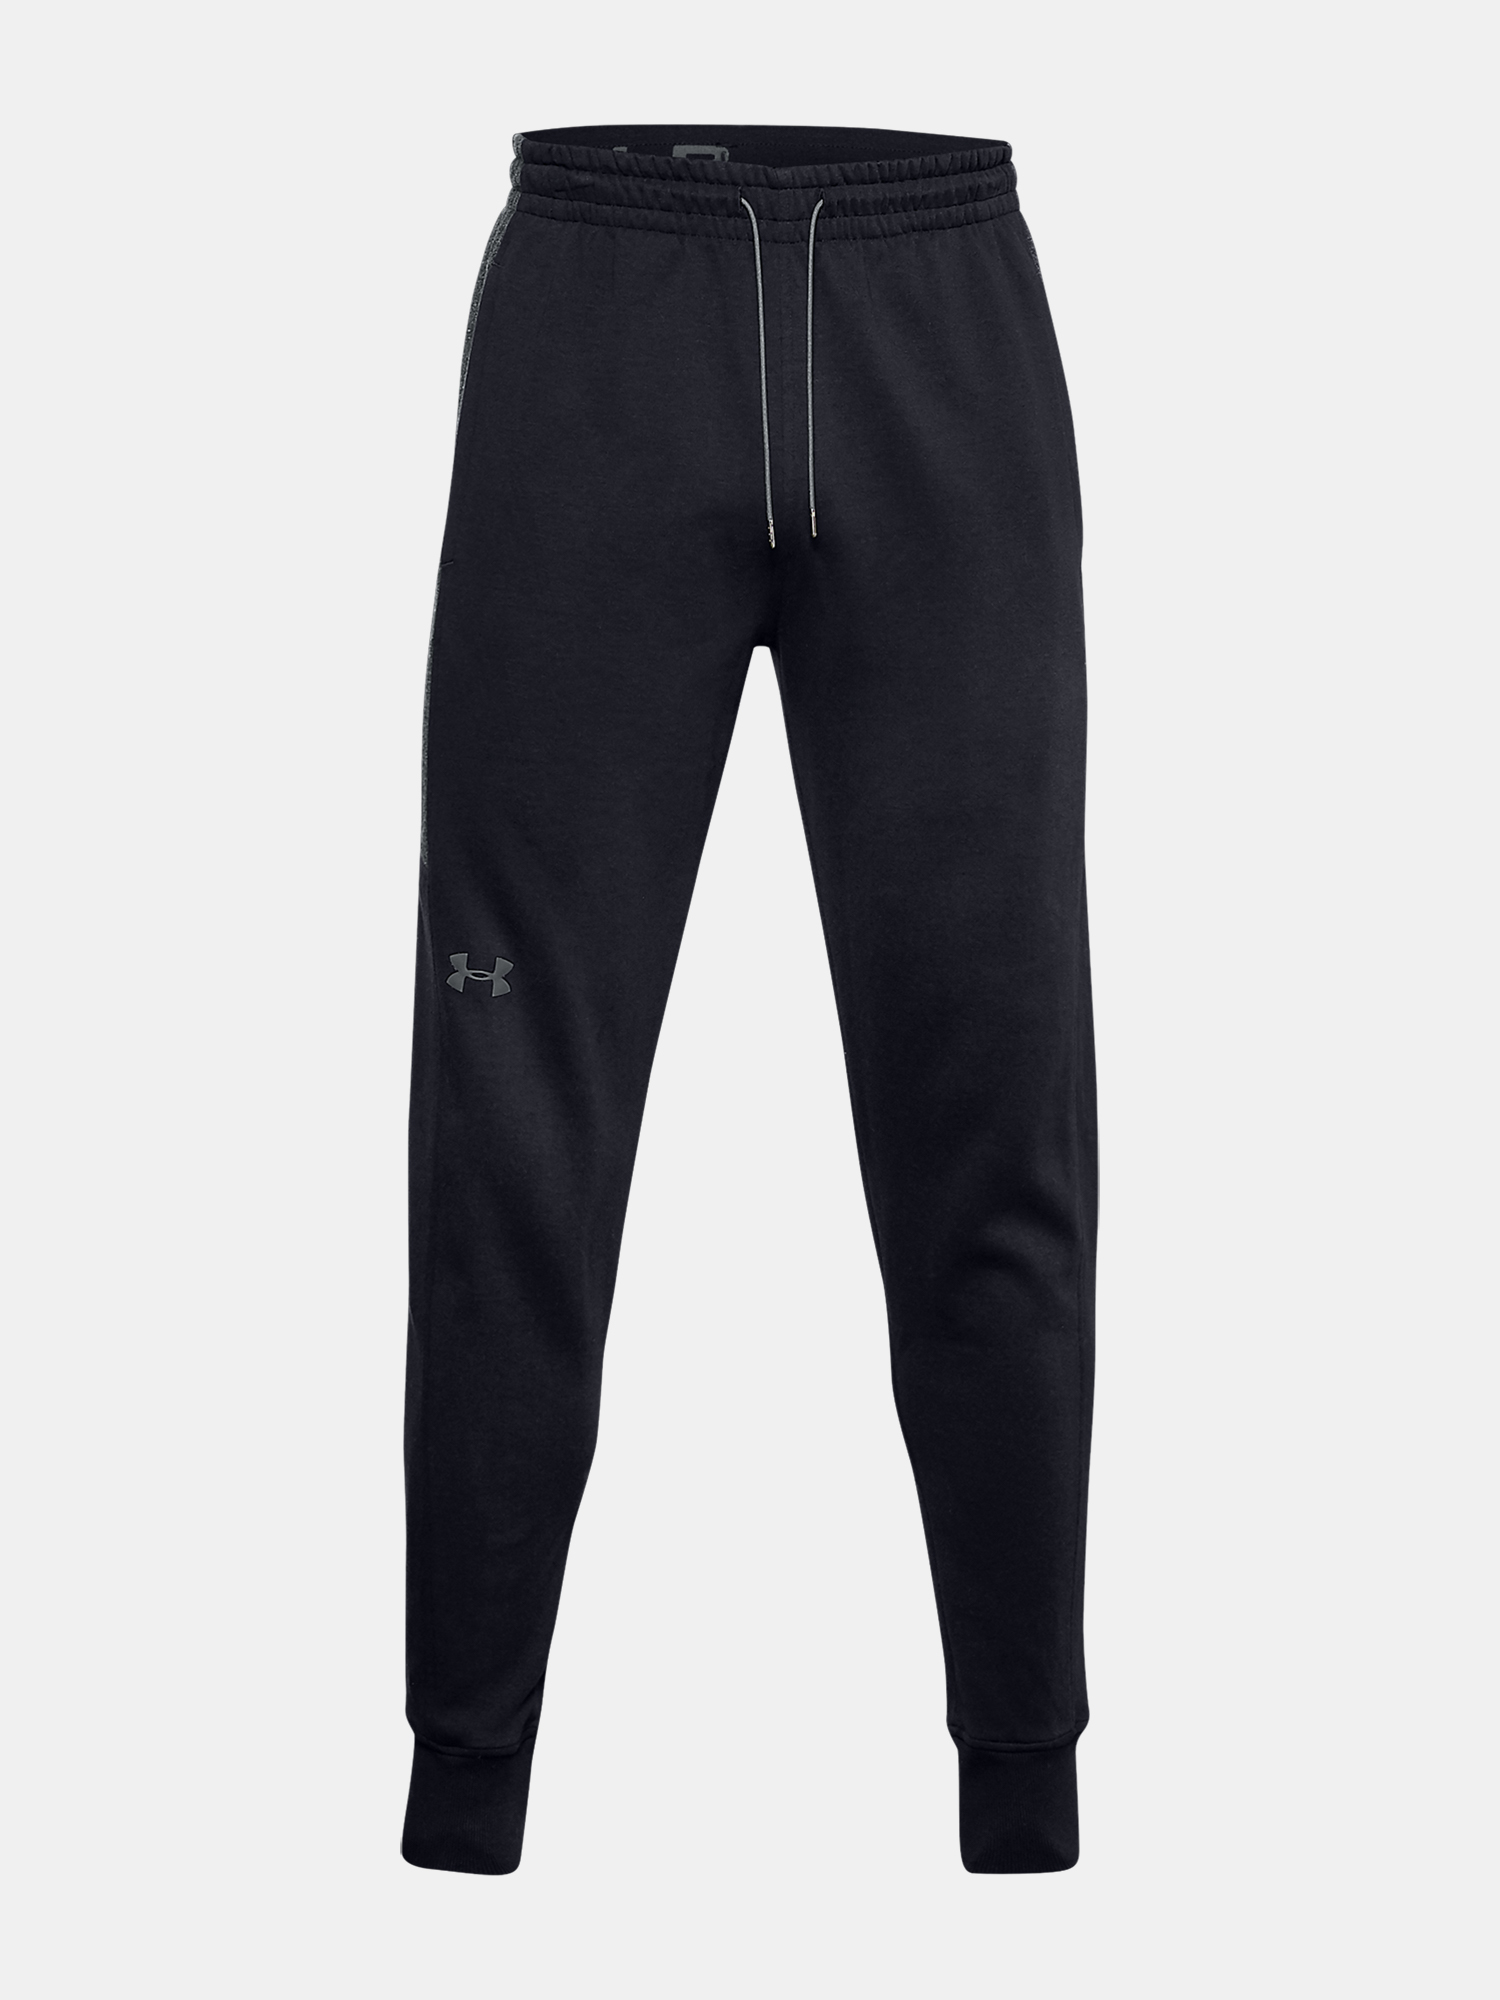 Tepláky Under Armour DOUBLE KNIT JOGGERS-BLK (1)